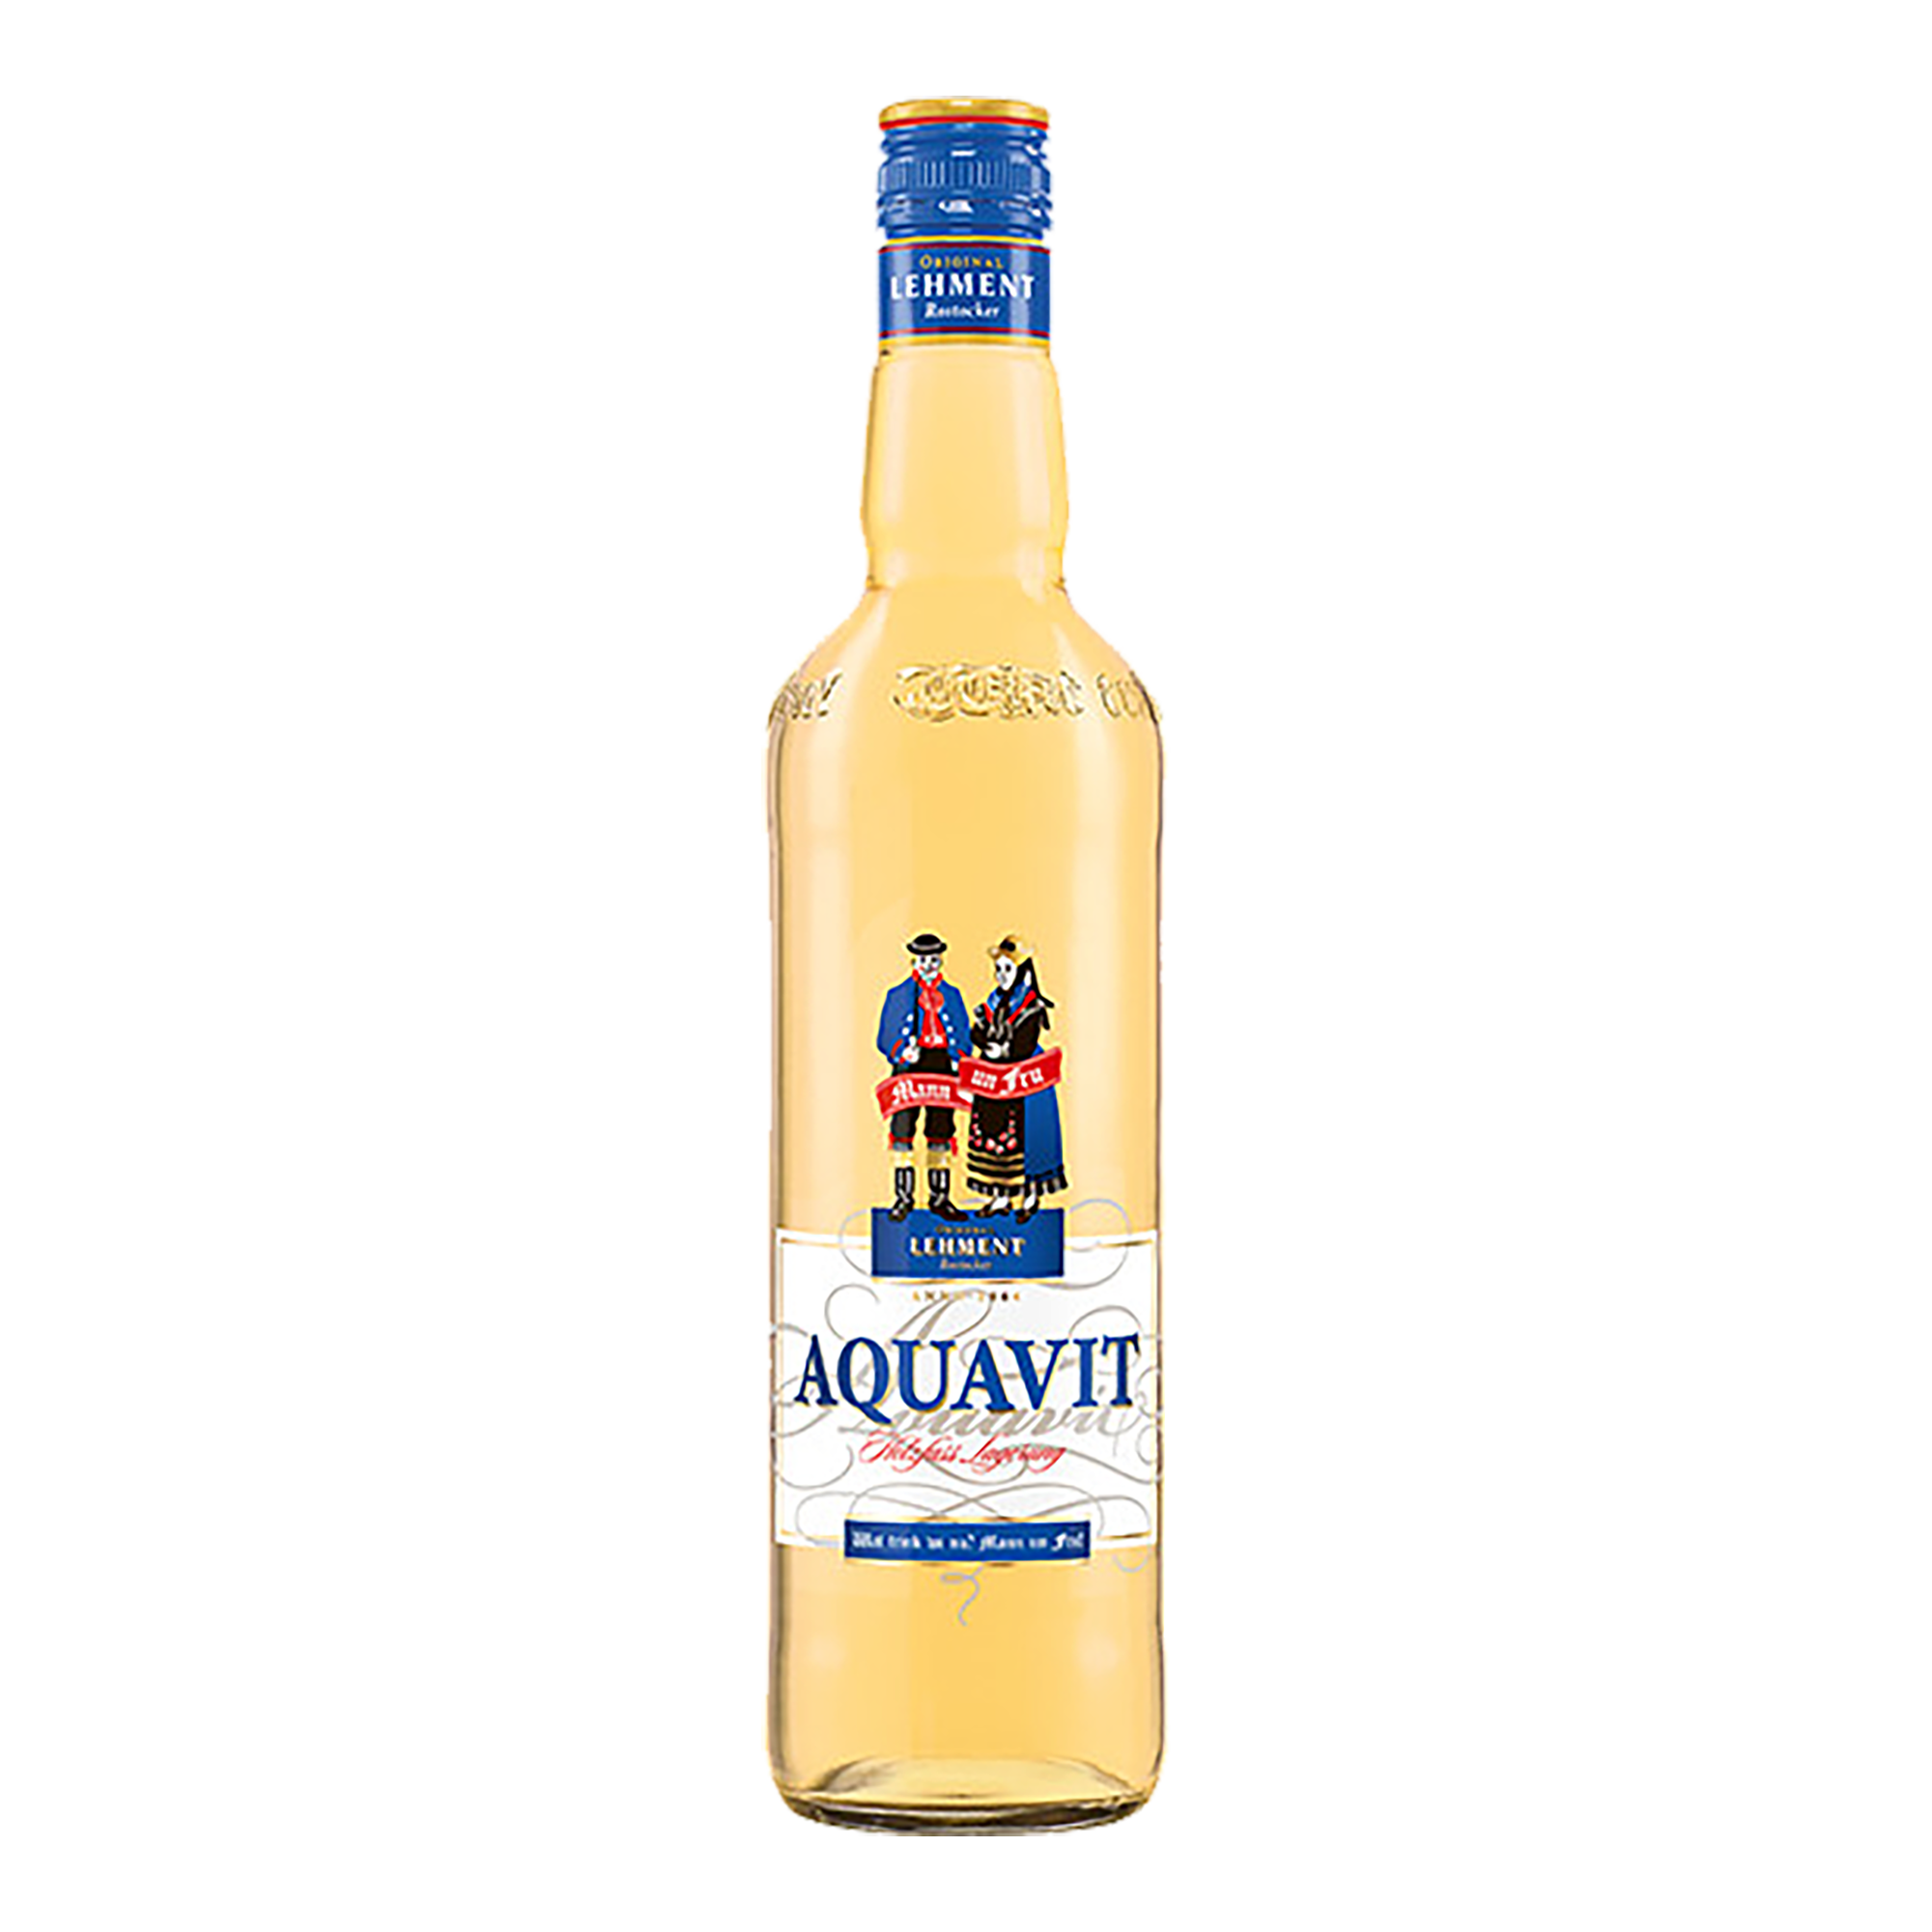 Original Lehment Rostocker Aquavit